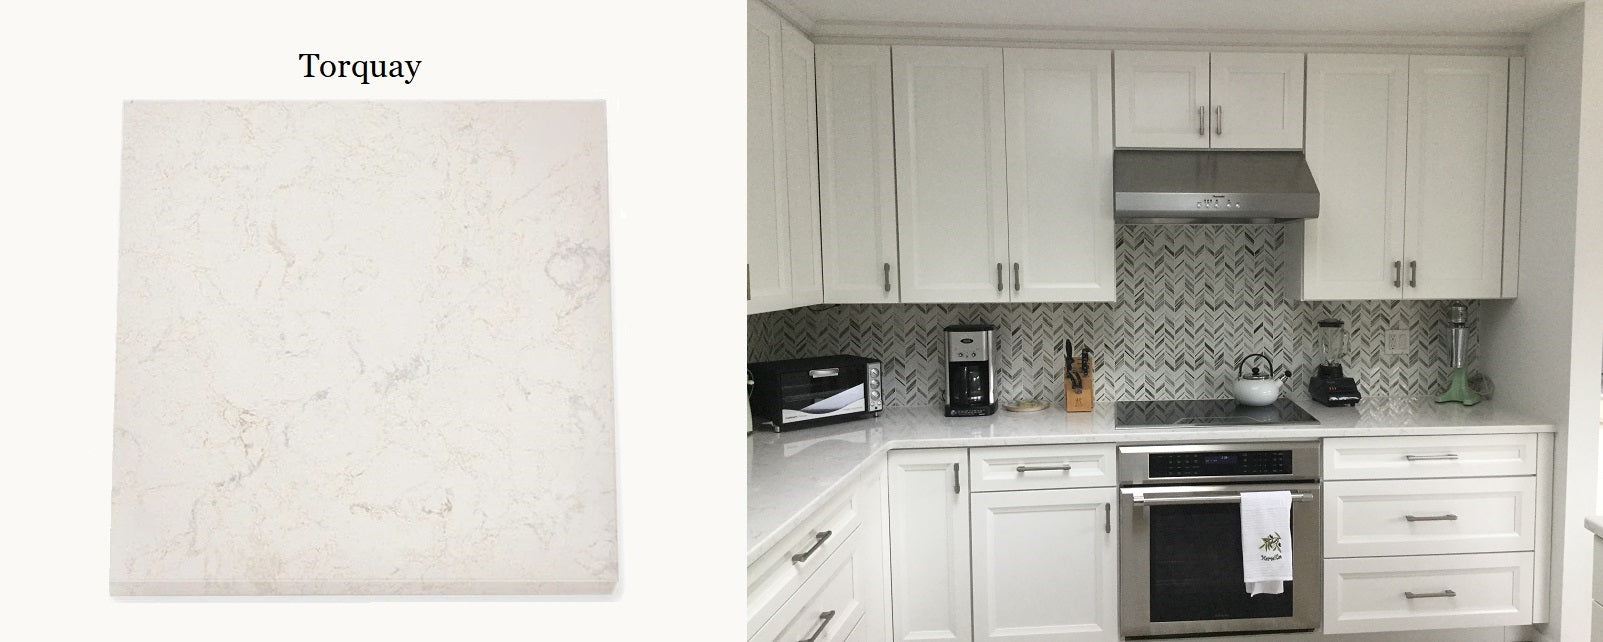 Cambria Torquay in an all white kitchen. DirectCabinets.com